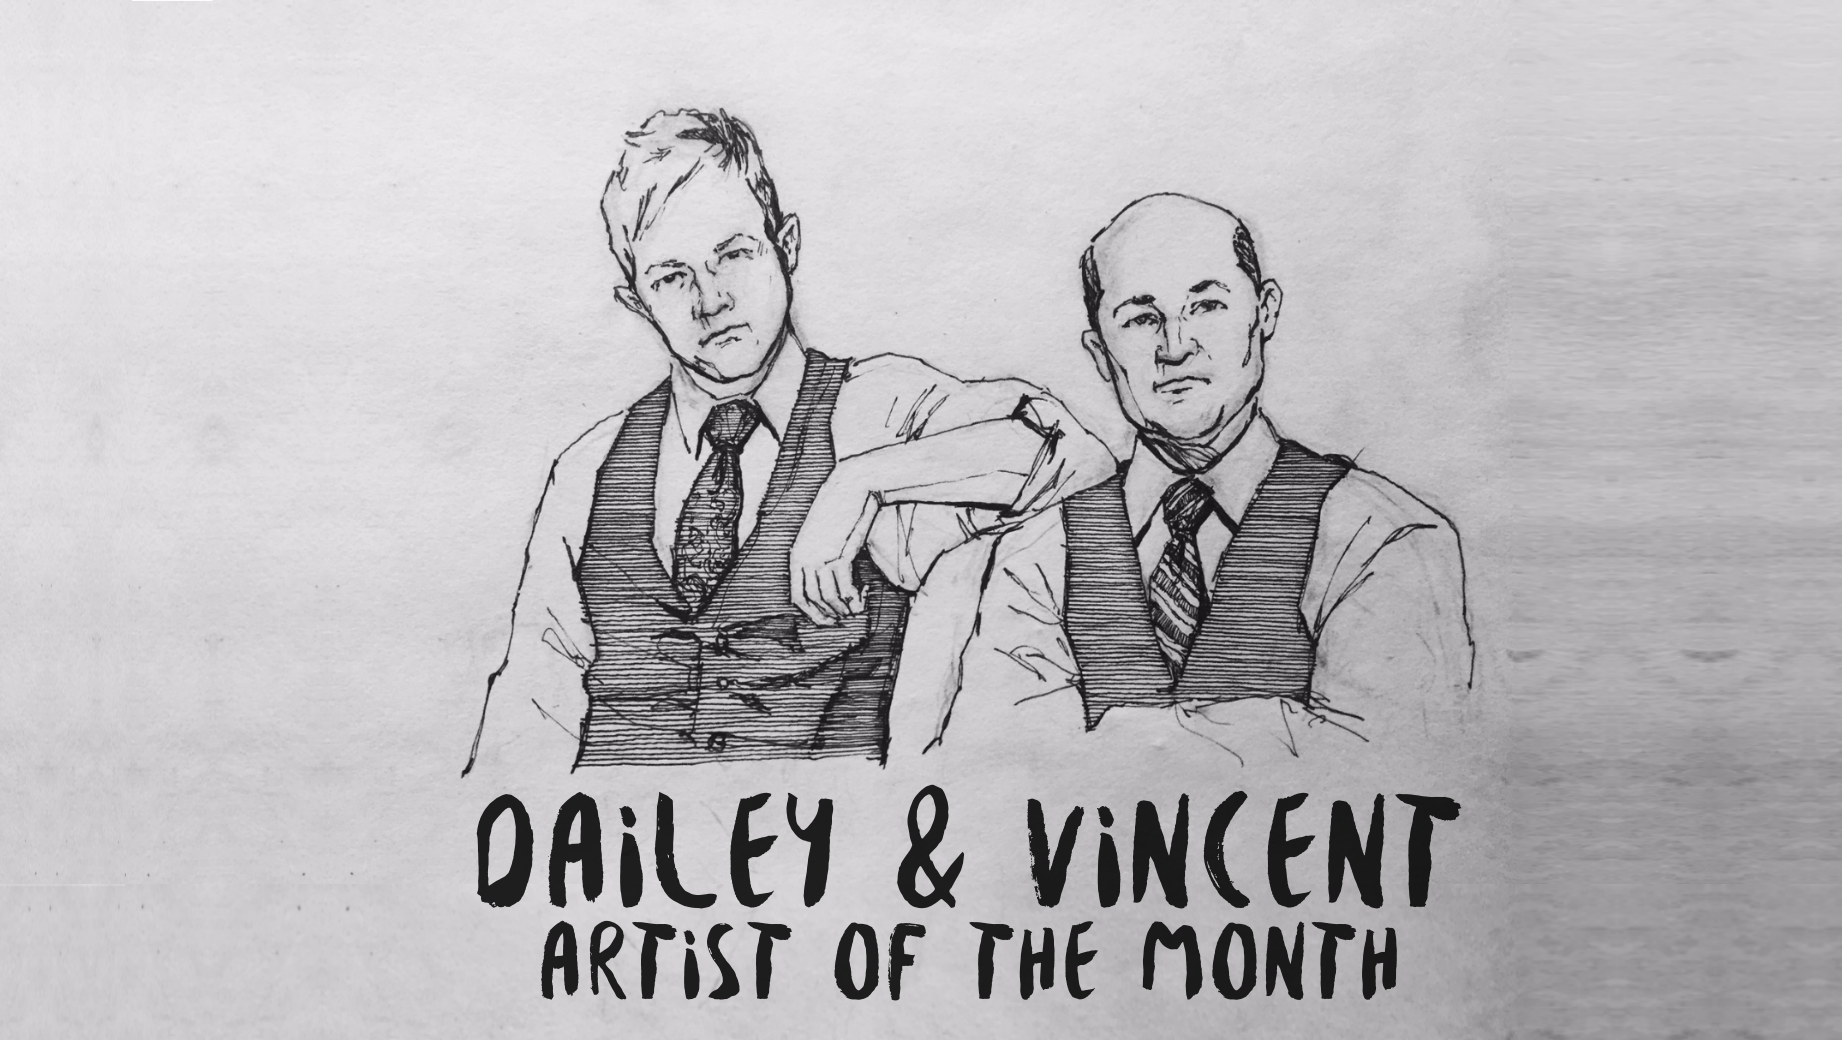 Artist of the Month: Dailey & Vincent